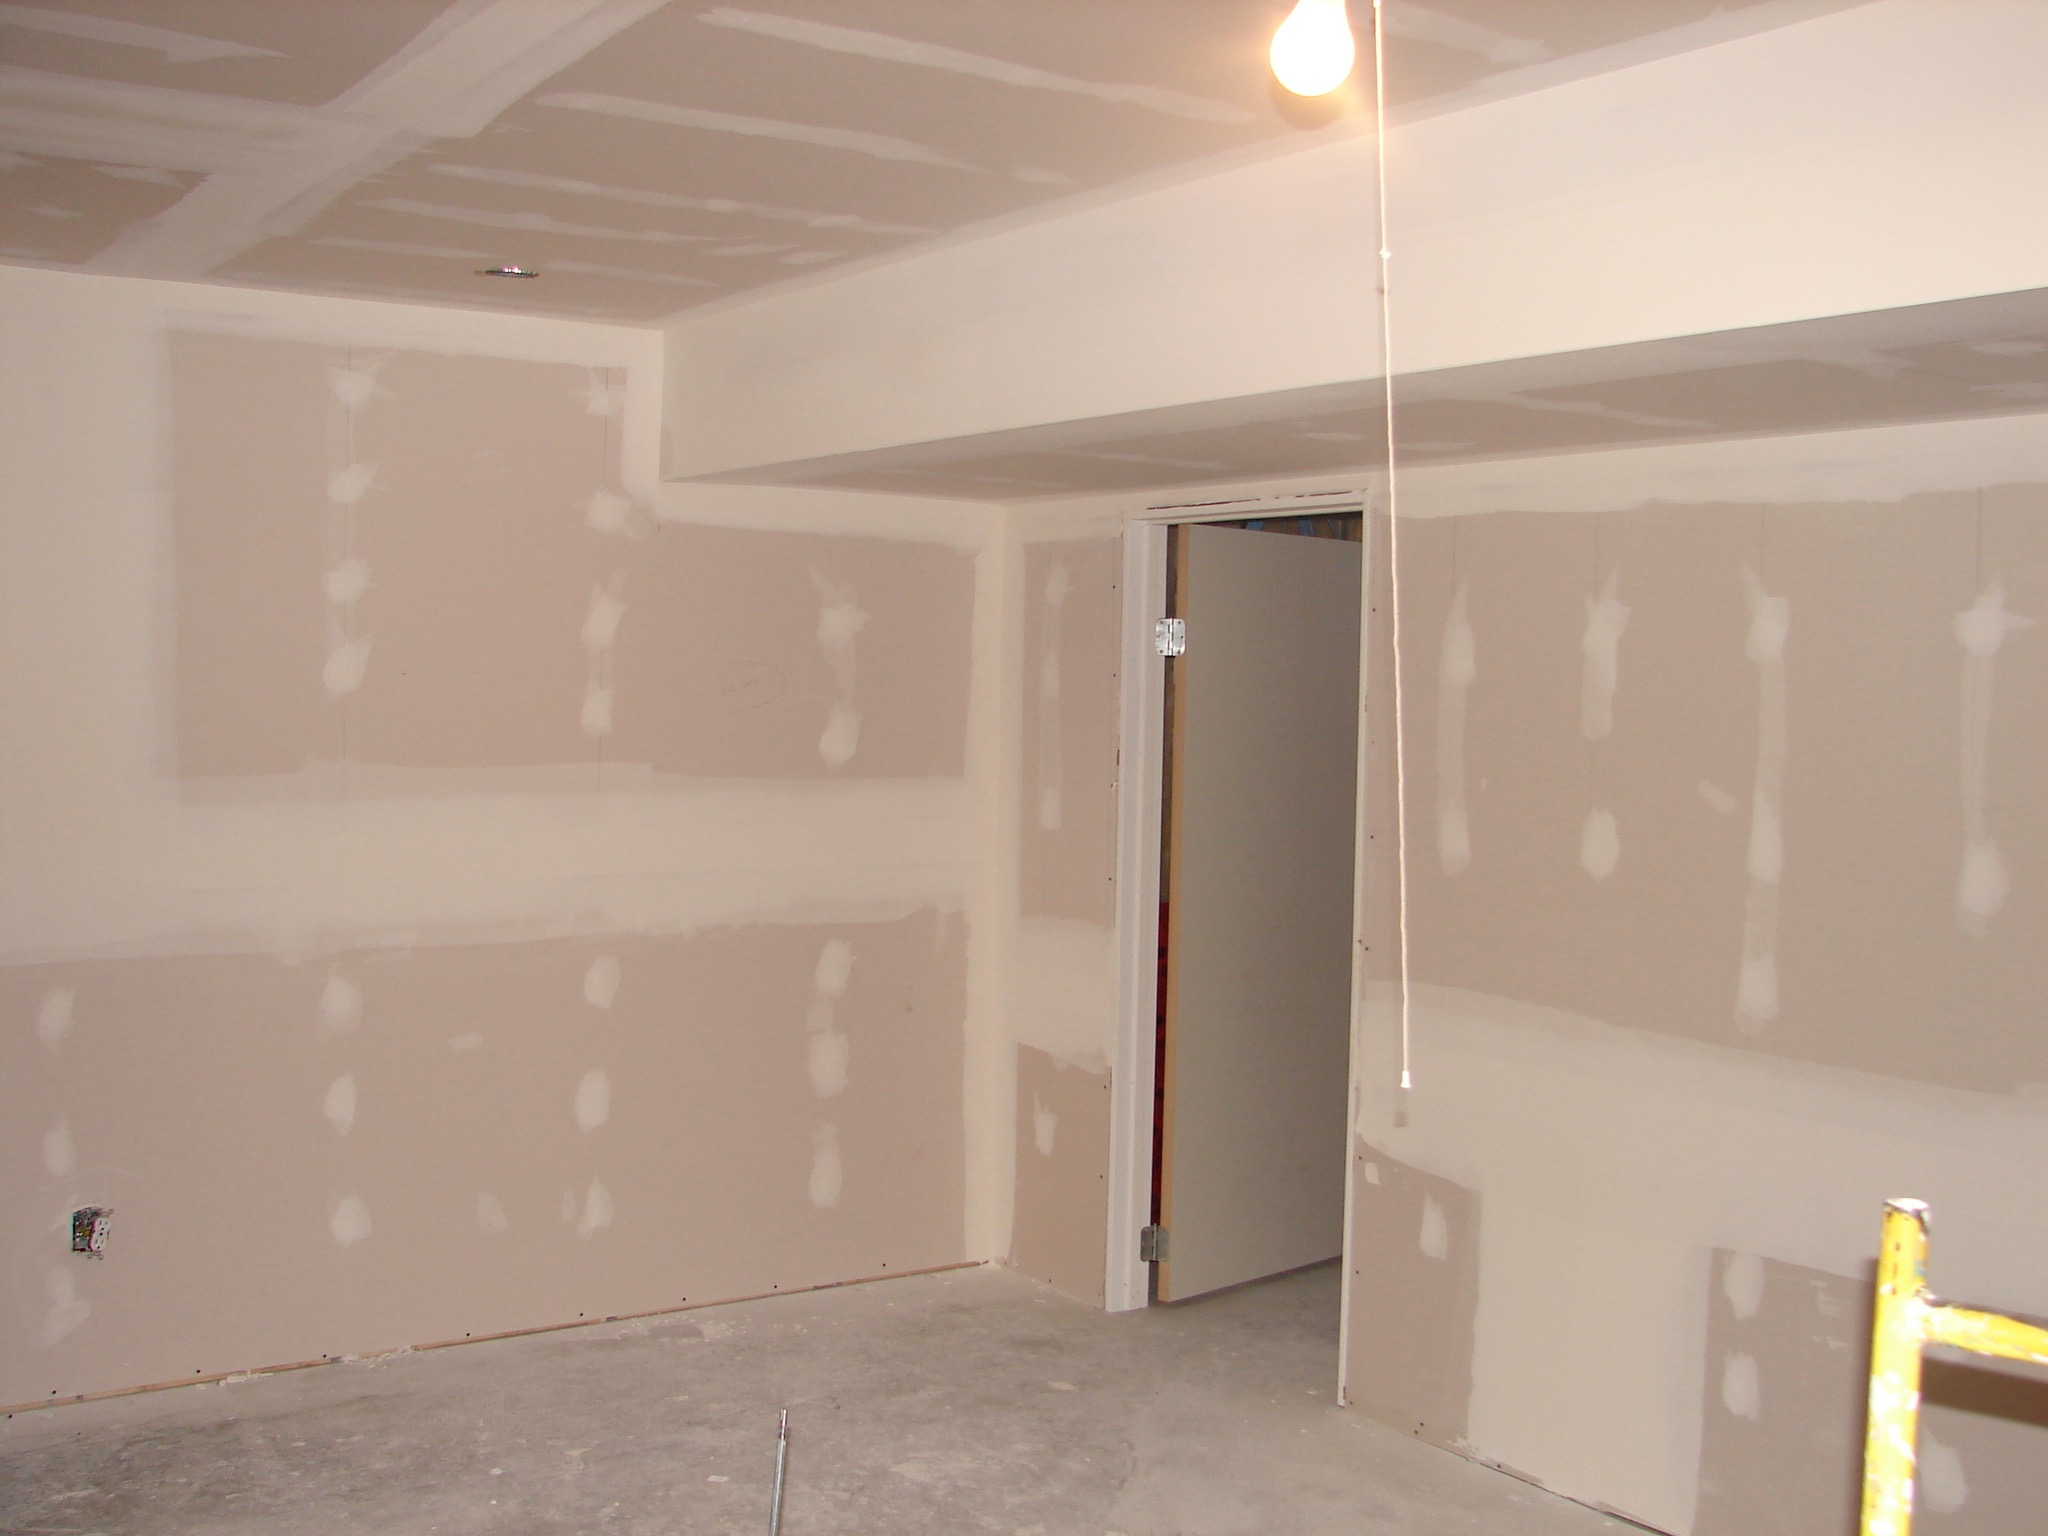 TF01  Taping & Framing - General Contractors Commercial Renovations in Edmonton, Office and Warehouse Project Contractors